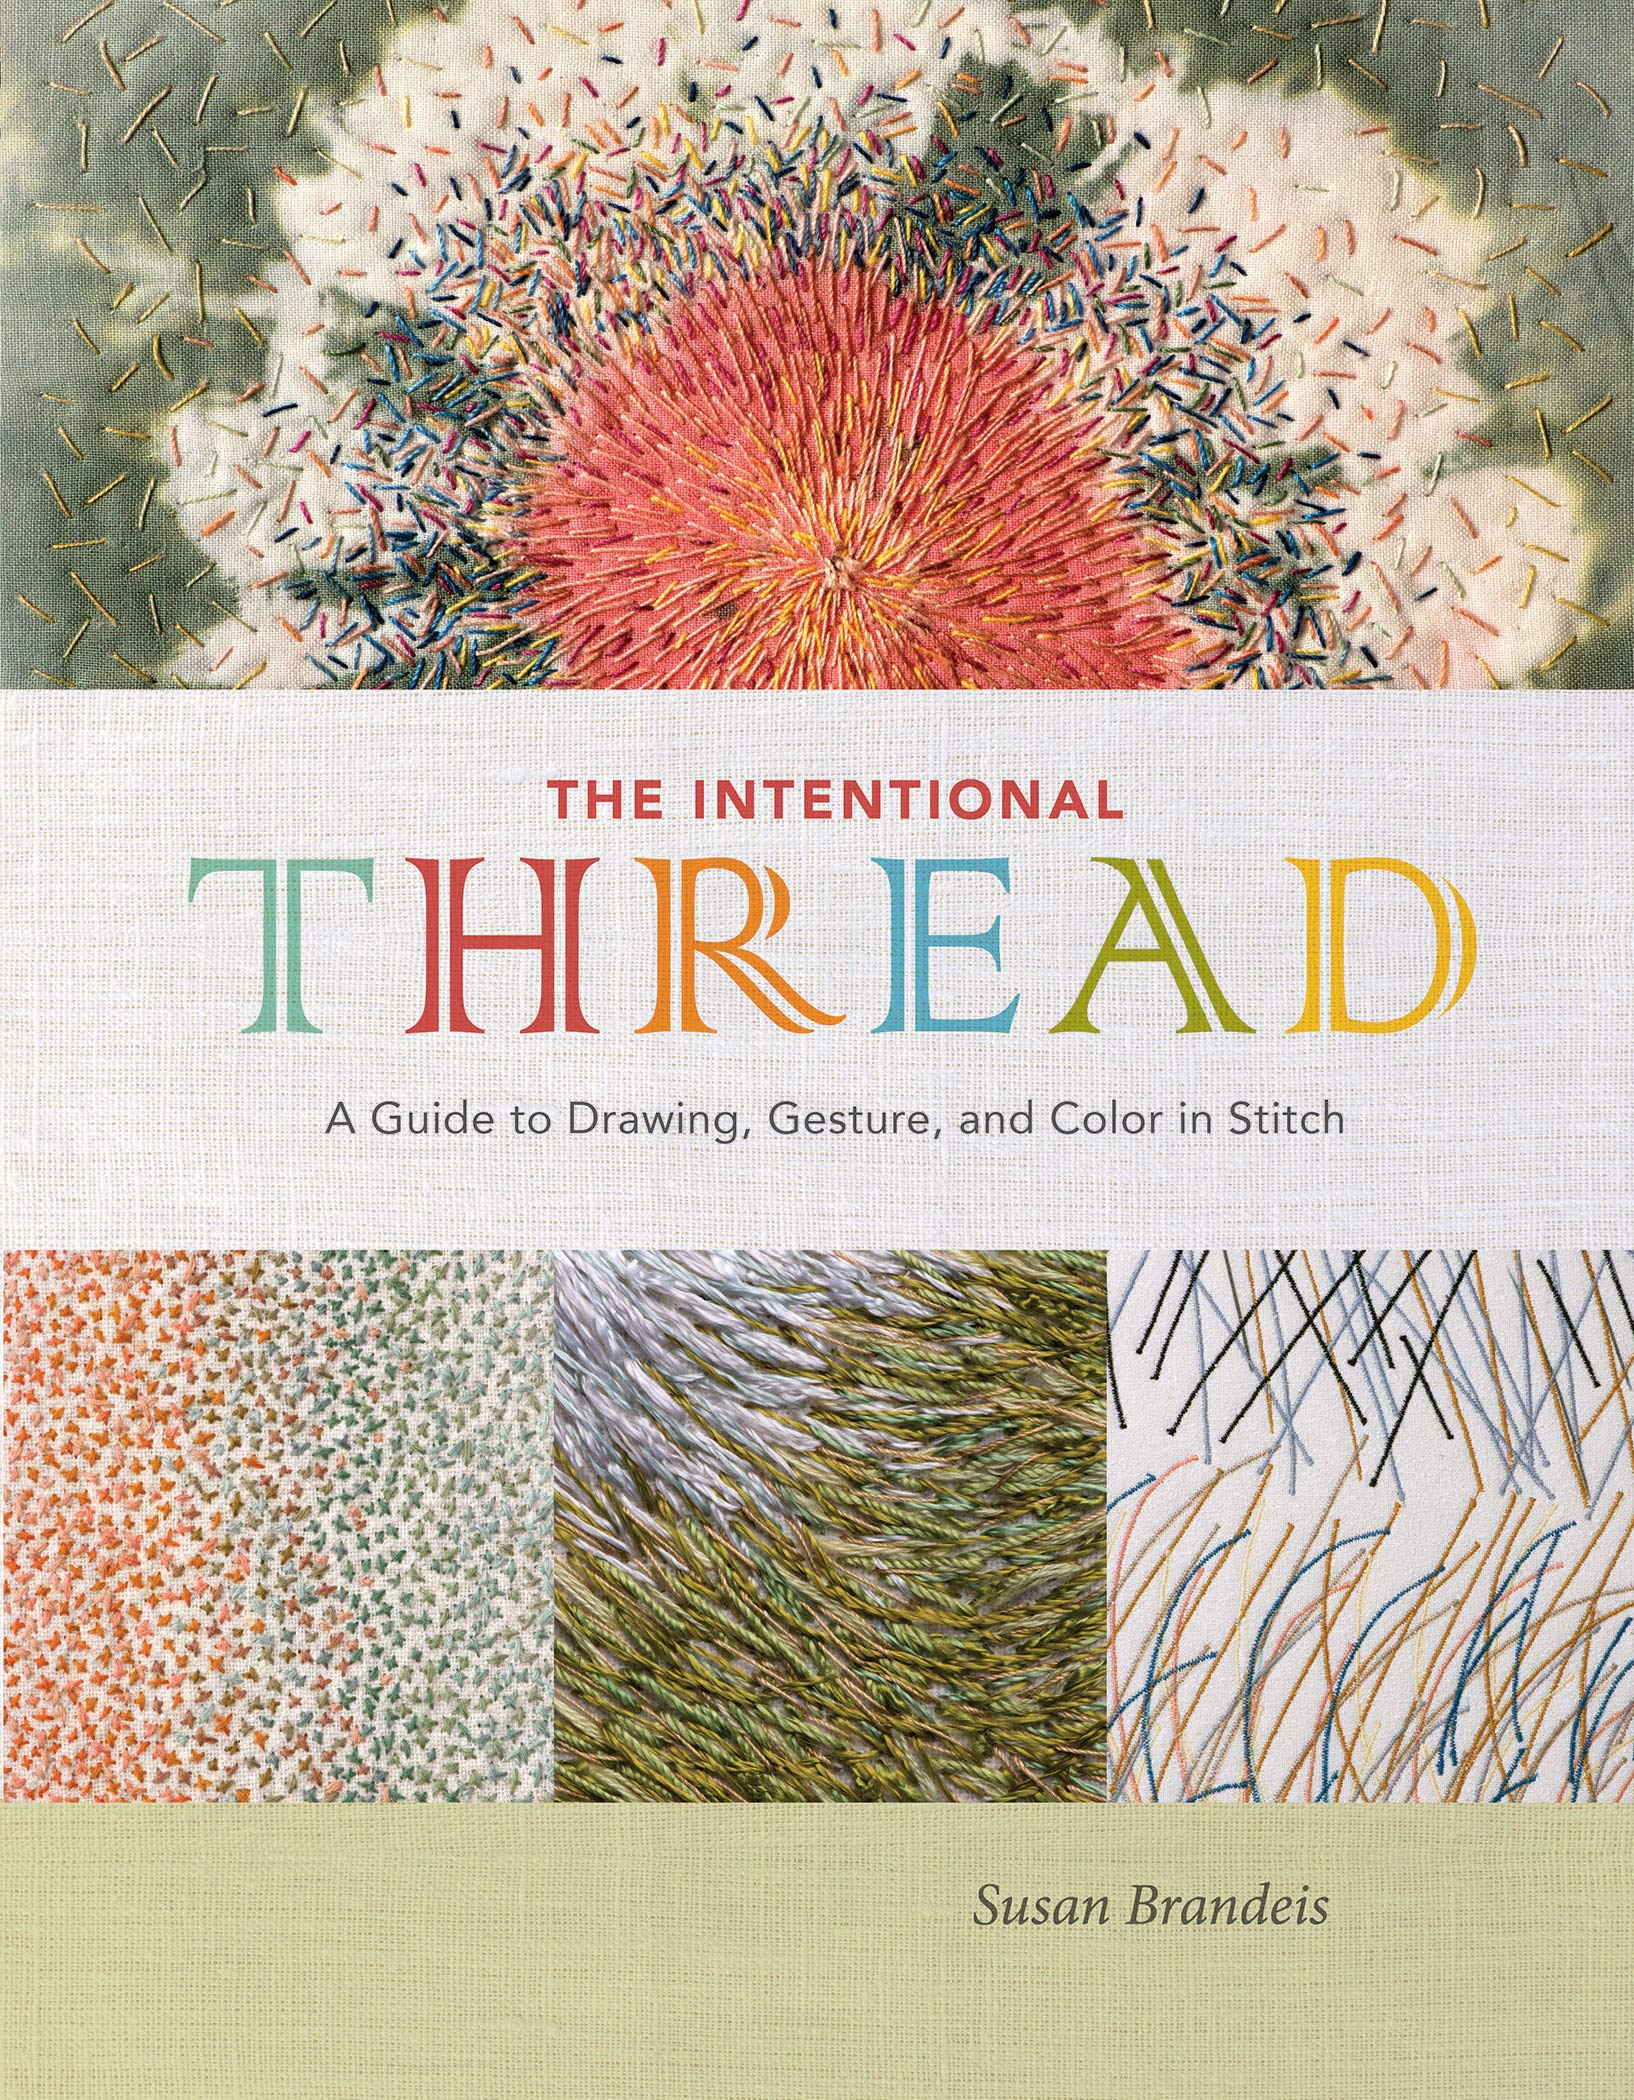 The Intentional Thread: A Guide to Drawing, Gesture, and Color in Stitch by Schiffer